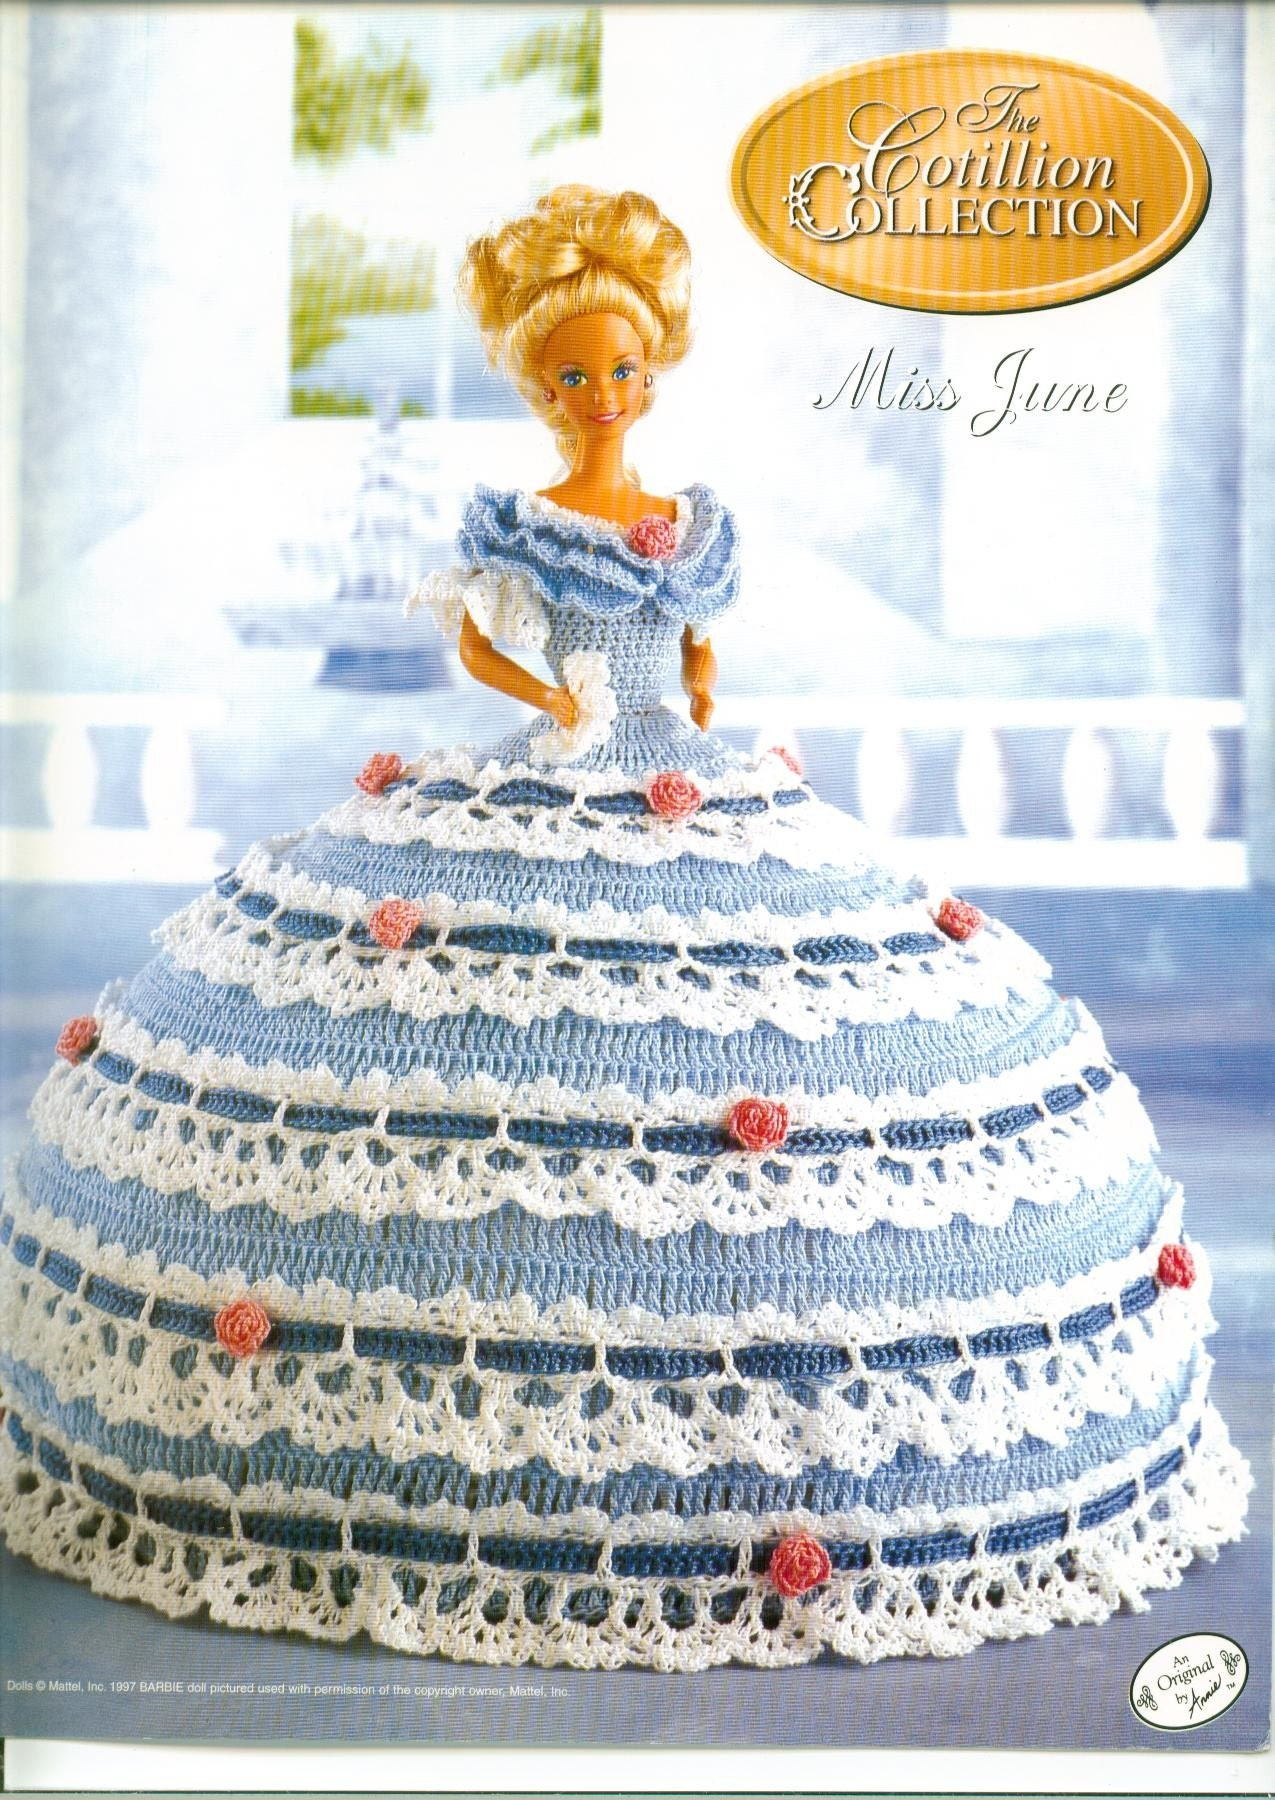 Annies Attic Crochet : Barbie crochet leaflet Annies Attic Fashion by victoriandolls